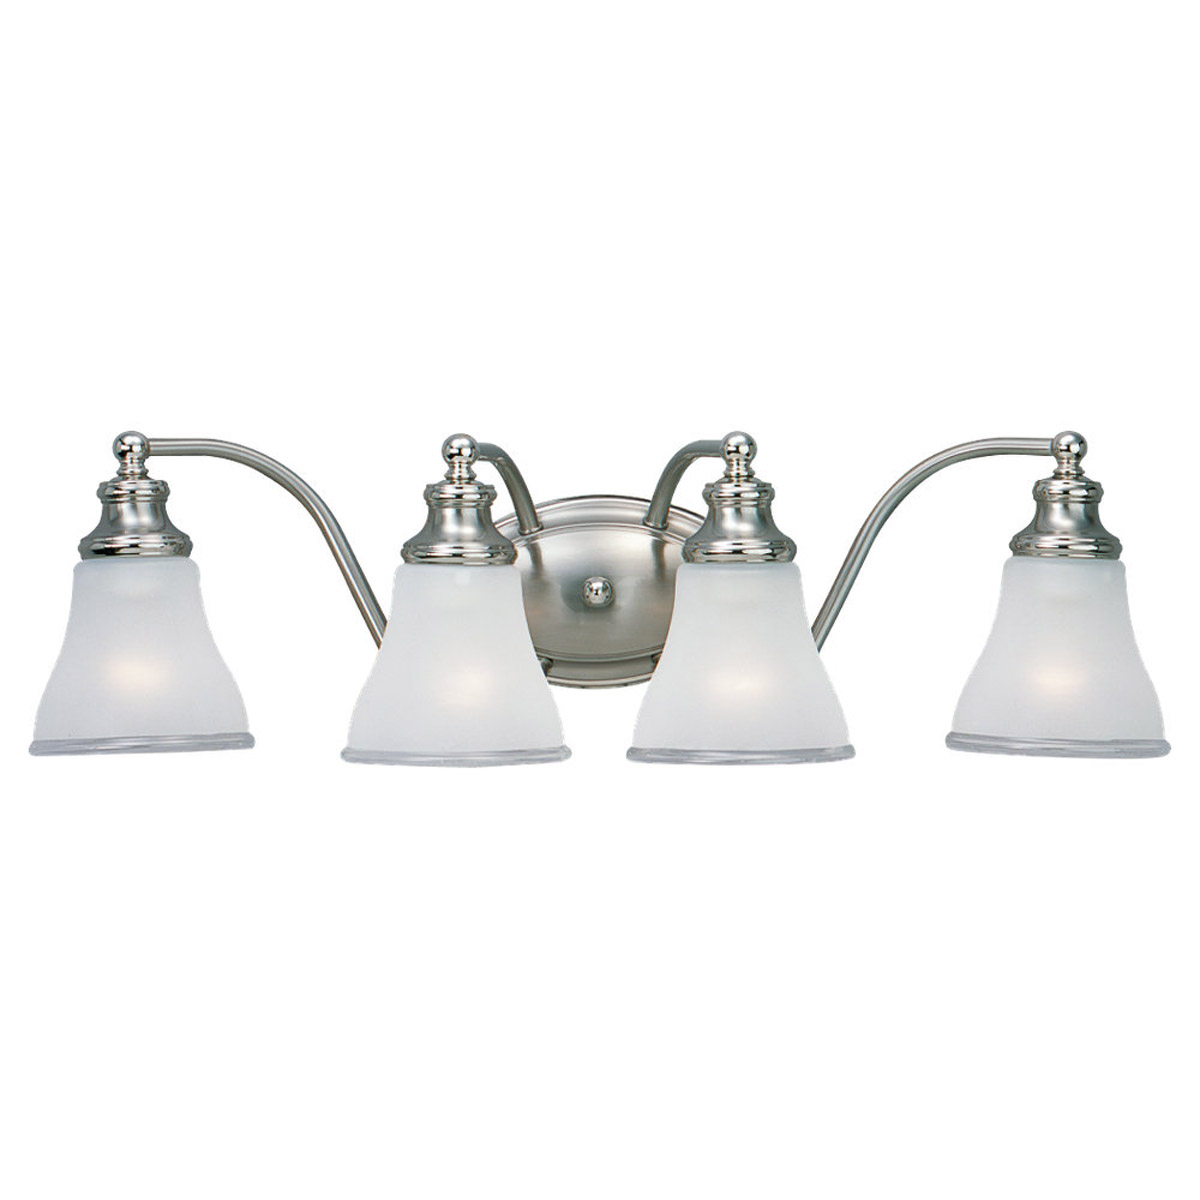 Sea Gull Lighting Alexandria 4 Light Bath Vanity in Two Tone Nickel 40012-773